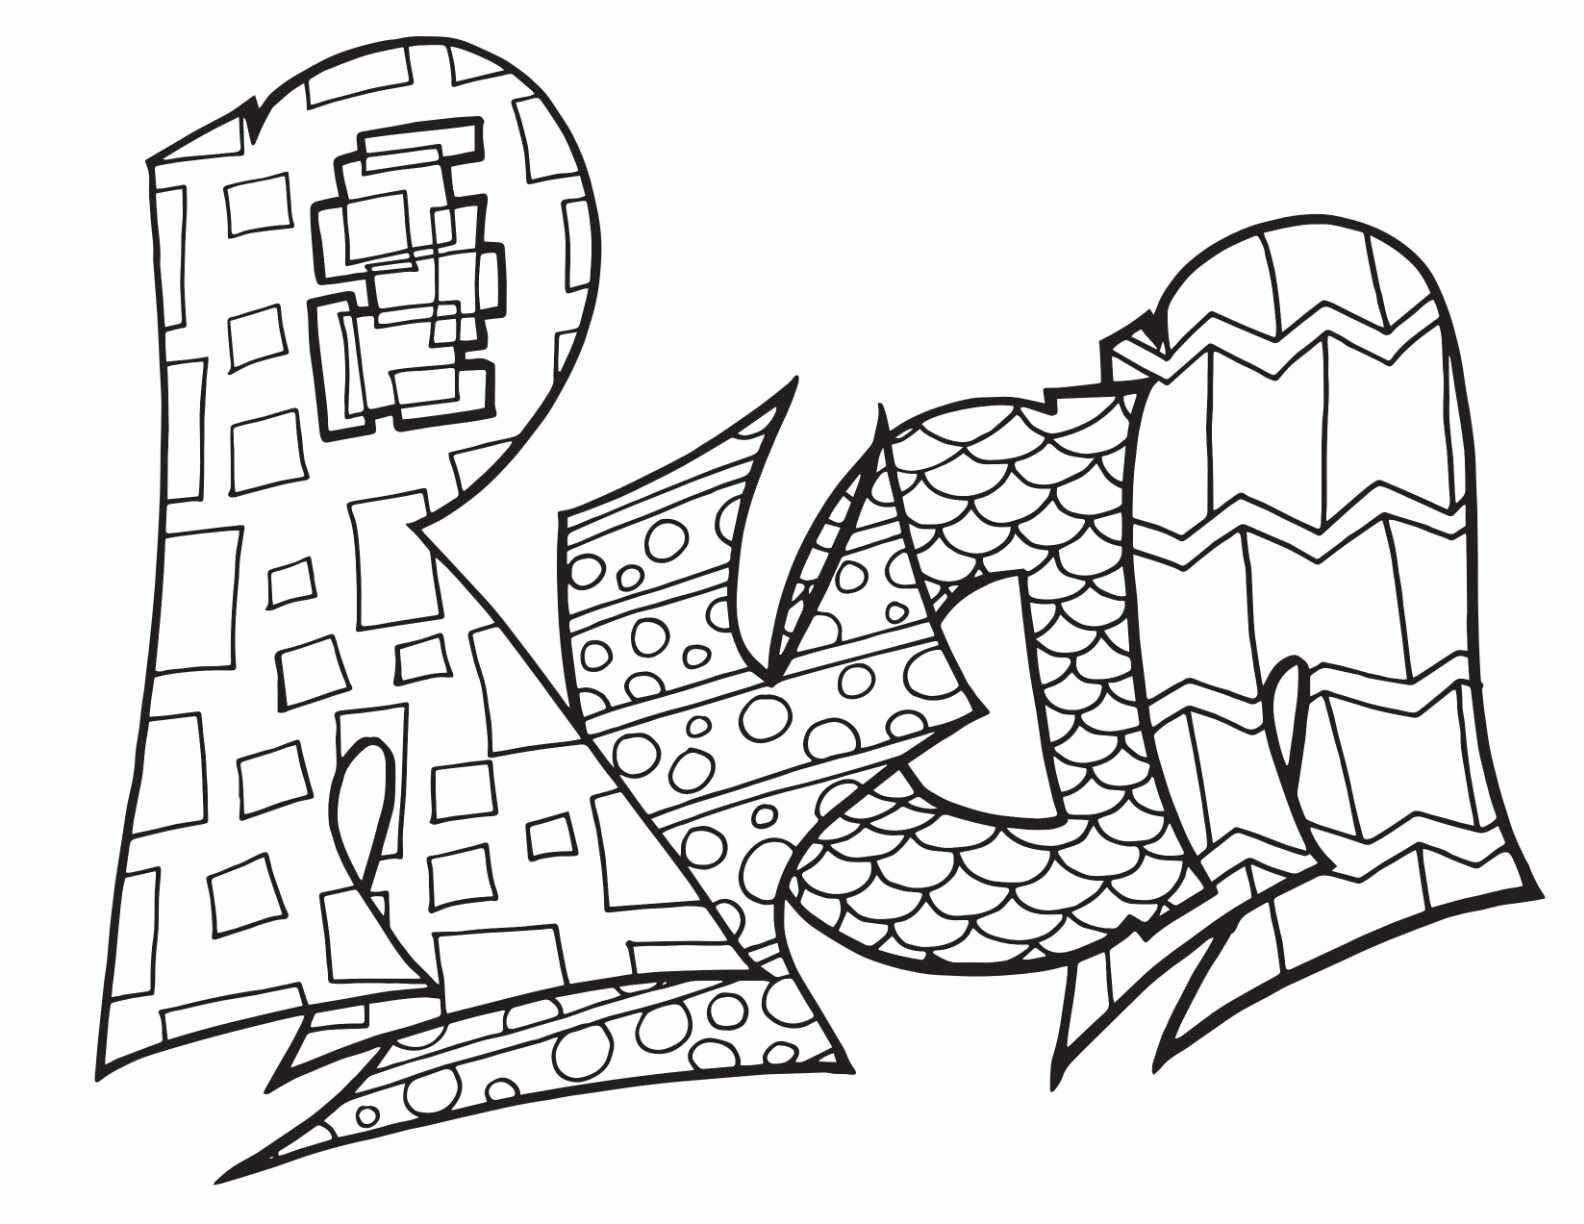 Ryan Free Coloring Page Stevie Doodles Free Printable Coloring Pages